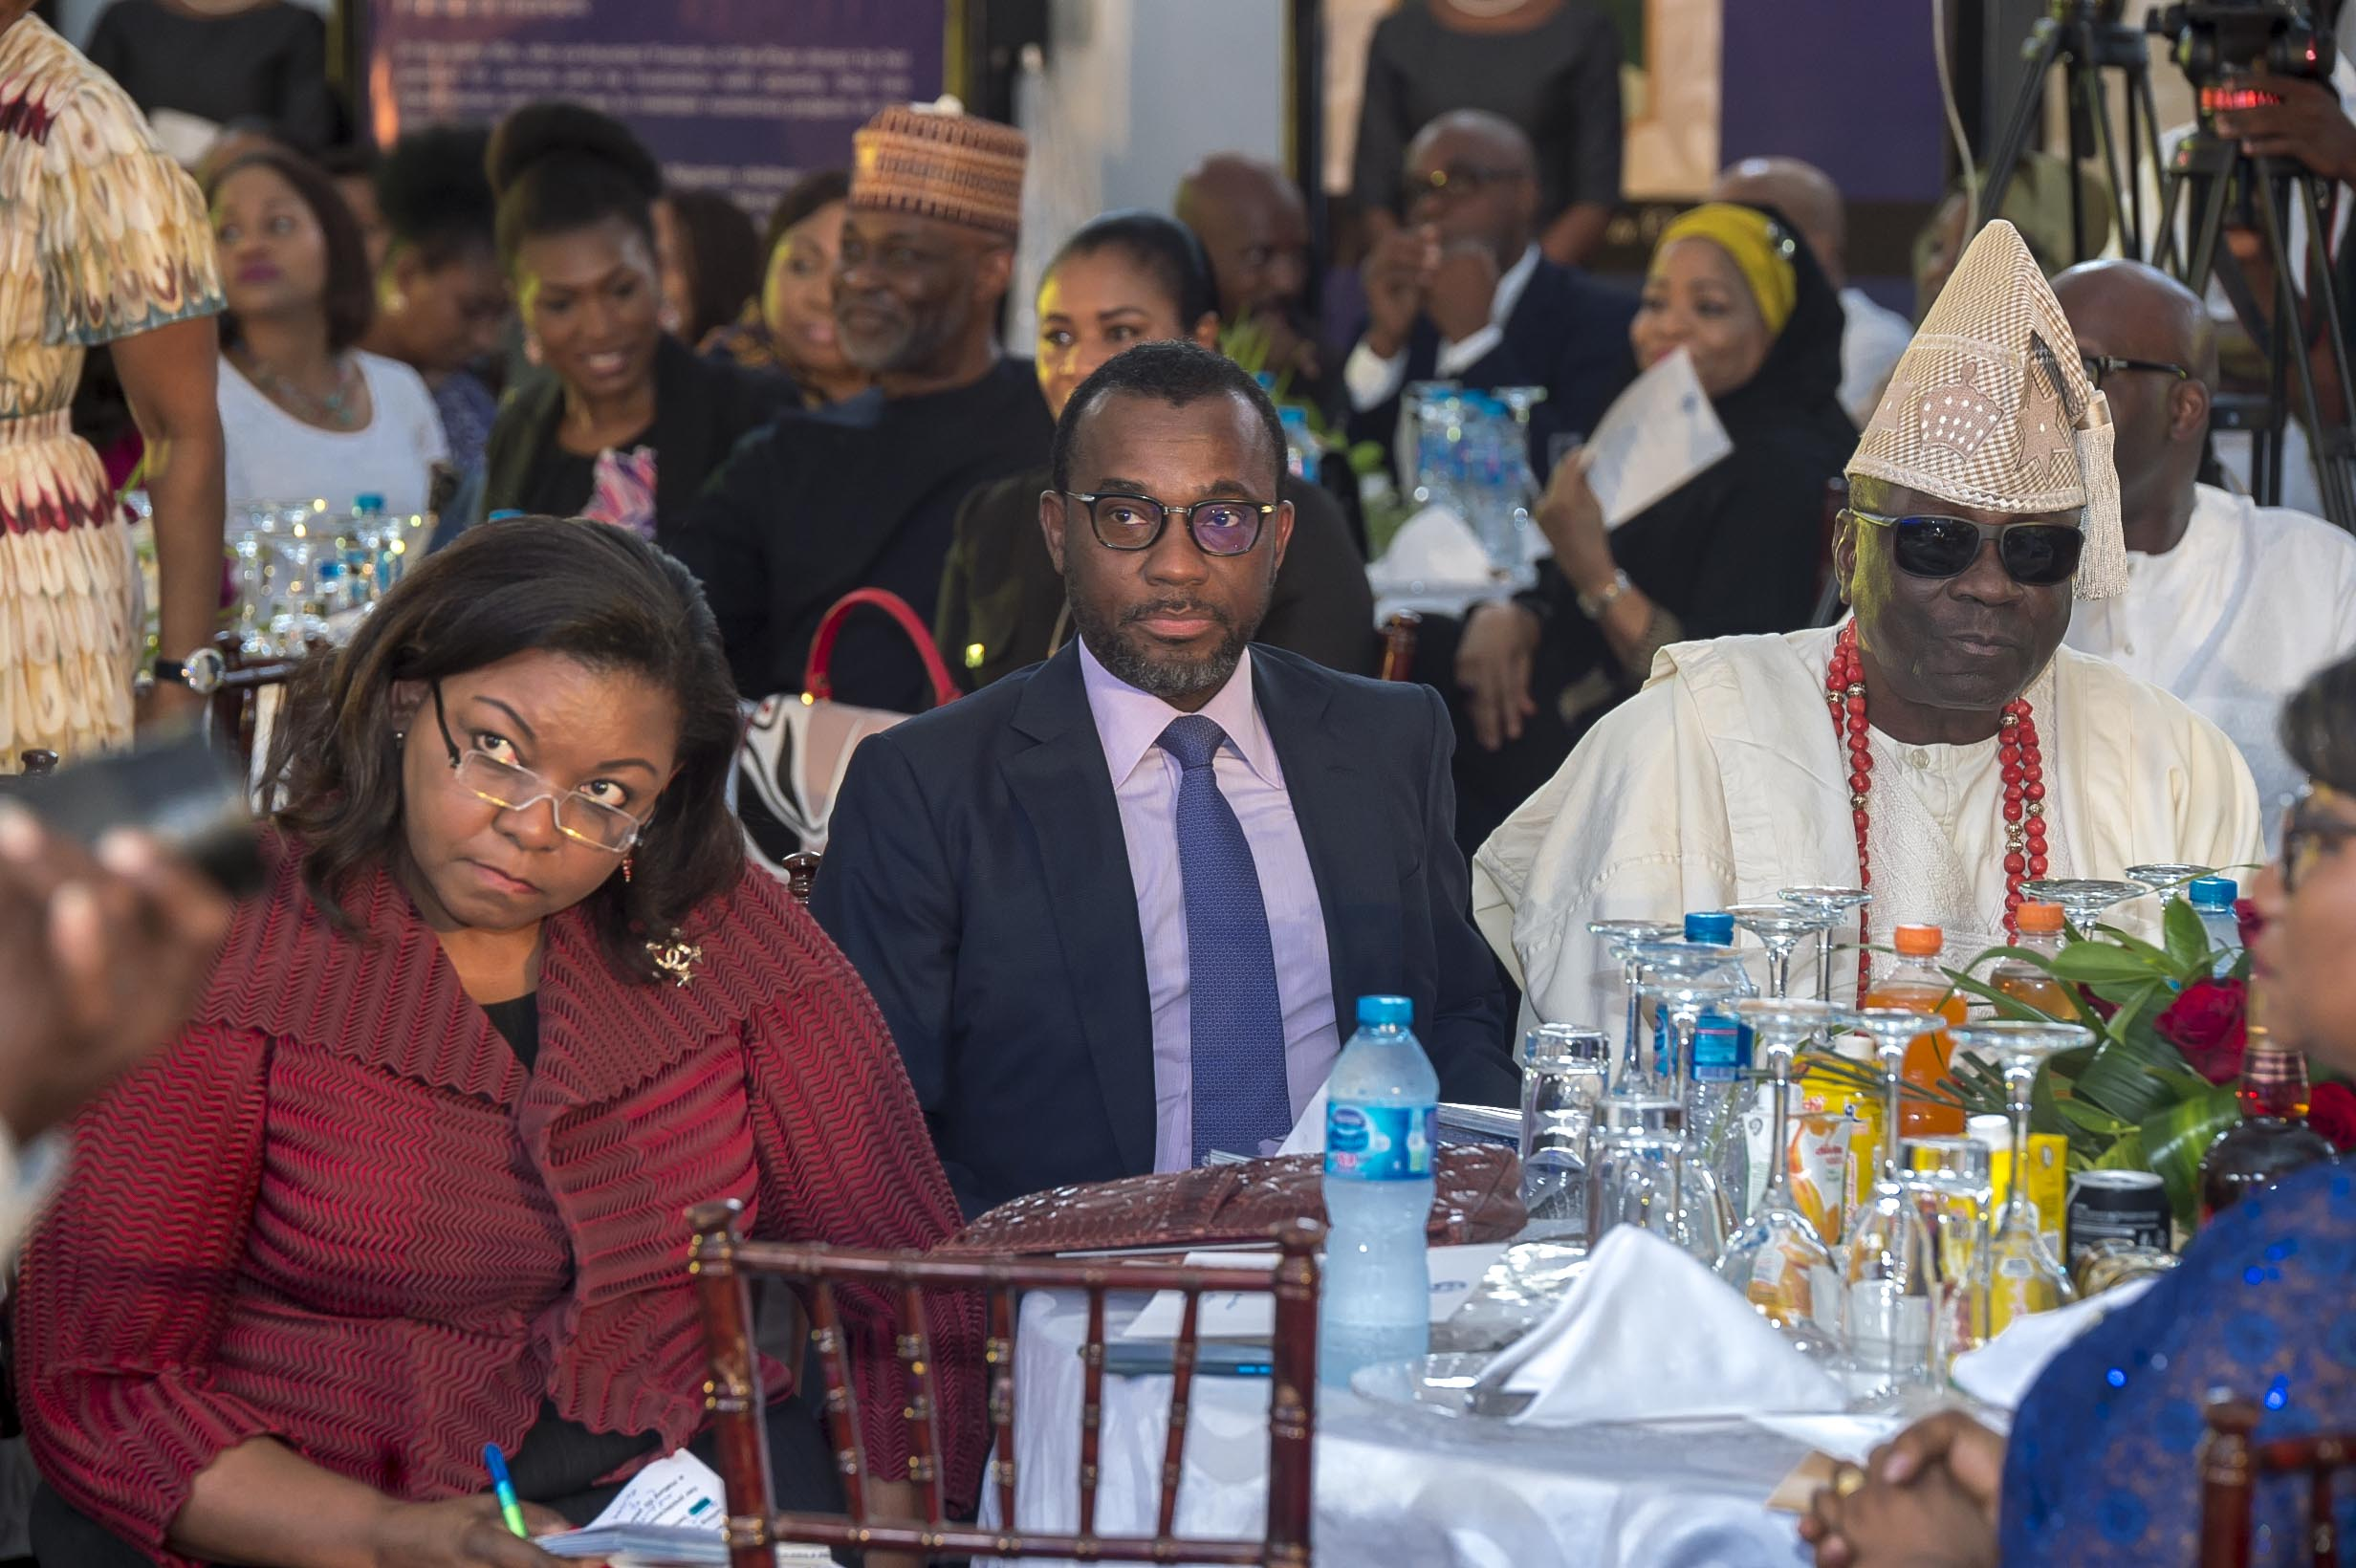 Mrs Bola Adesola & Mr Mofe Boyo DGMD Oando PLC & His Royal Majesty Oba Akiolu Oba of Lagos